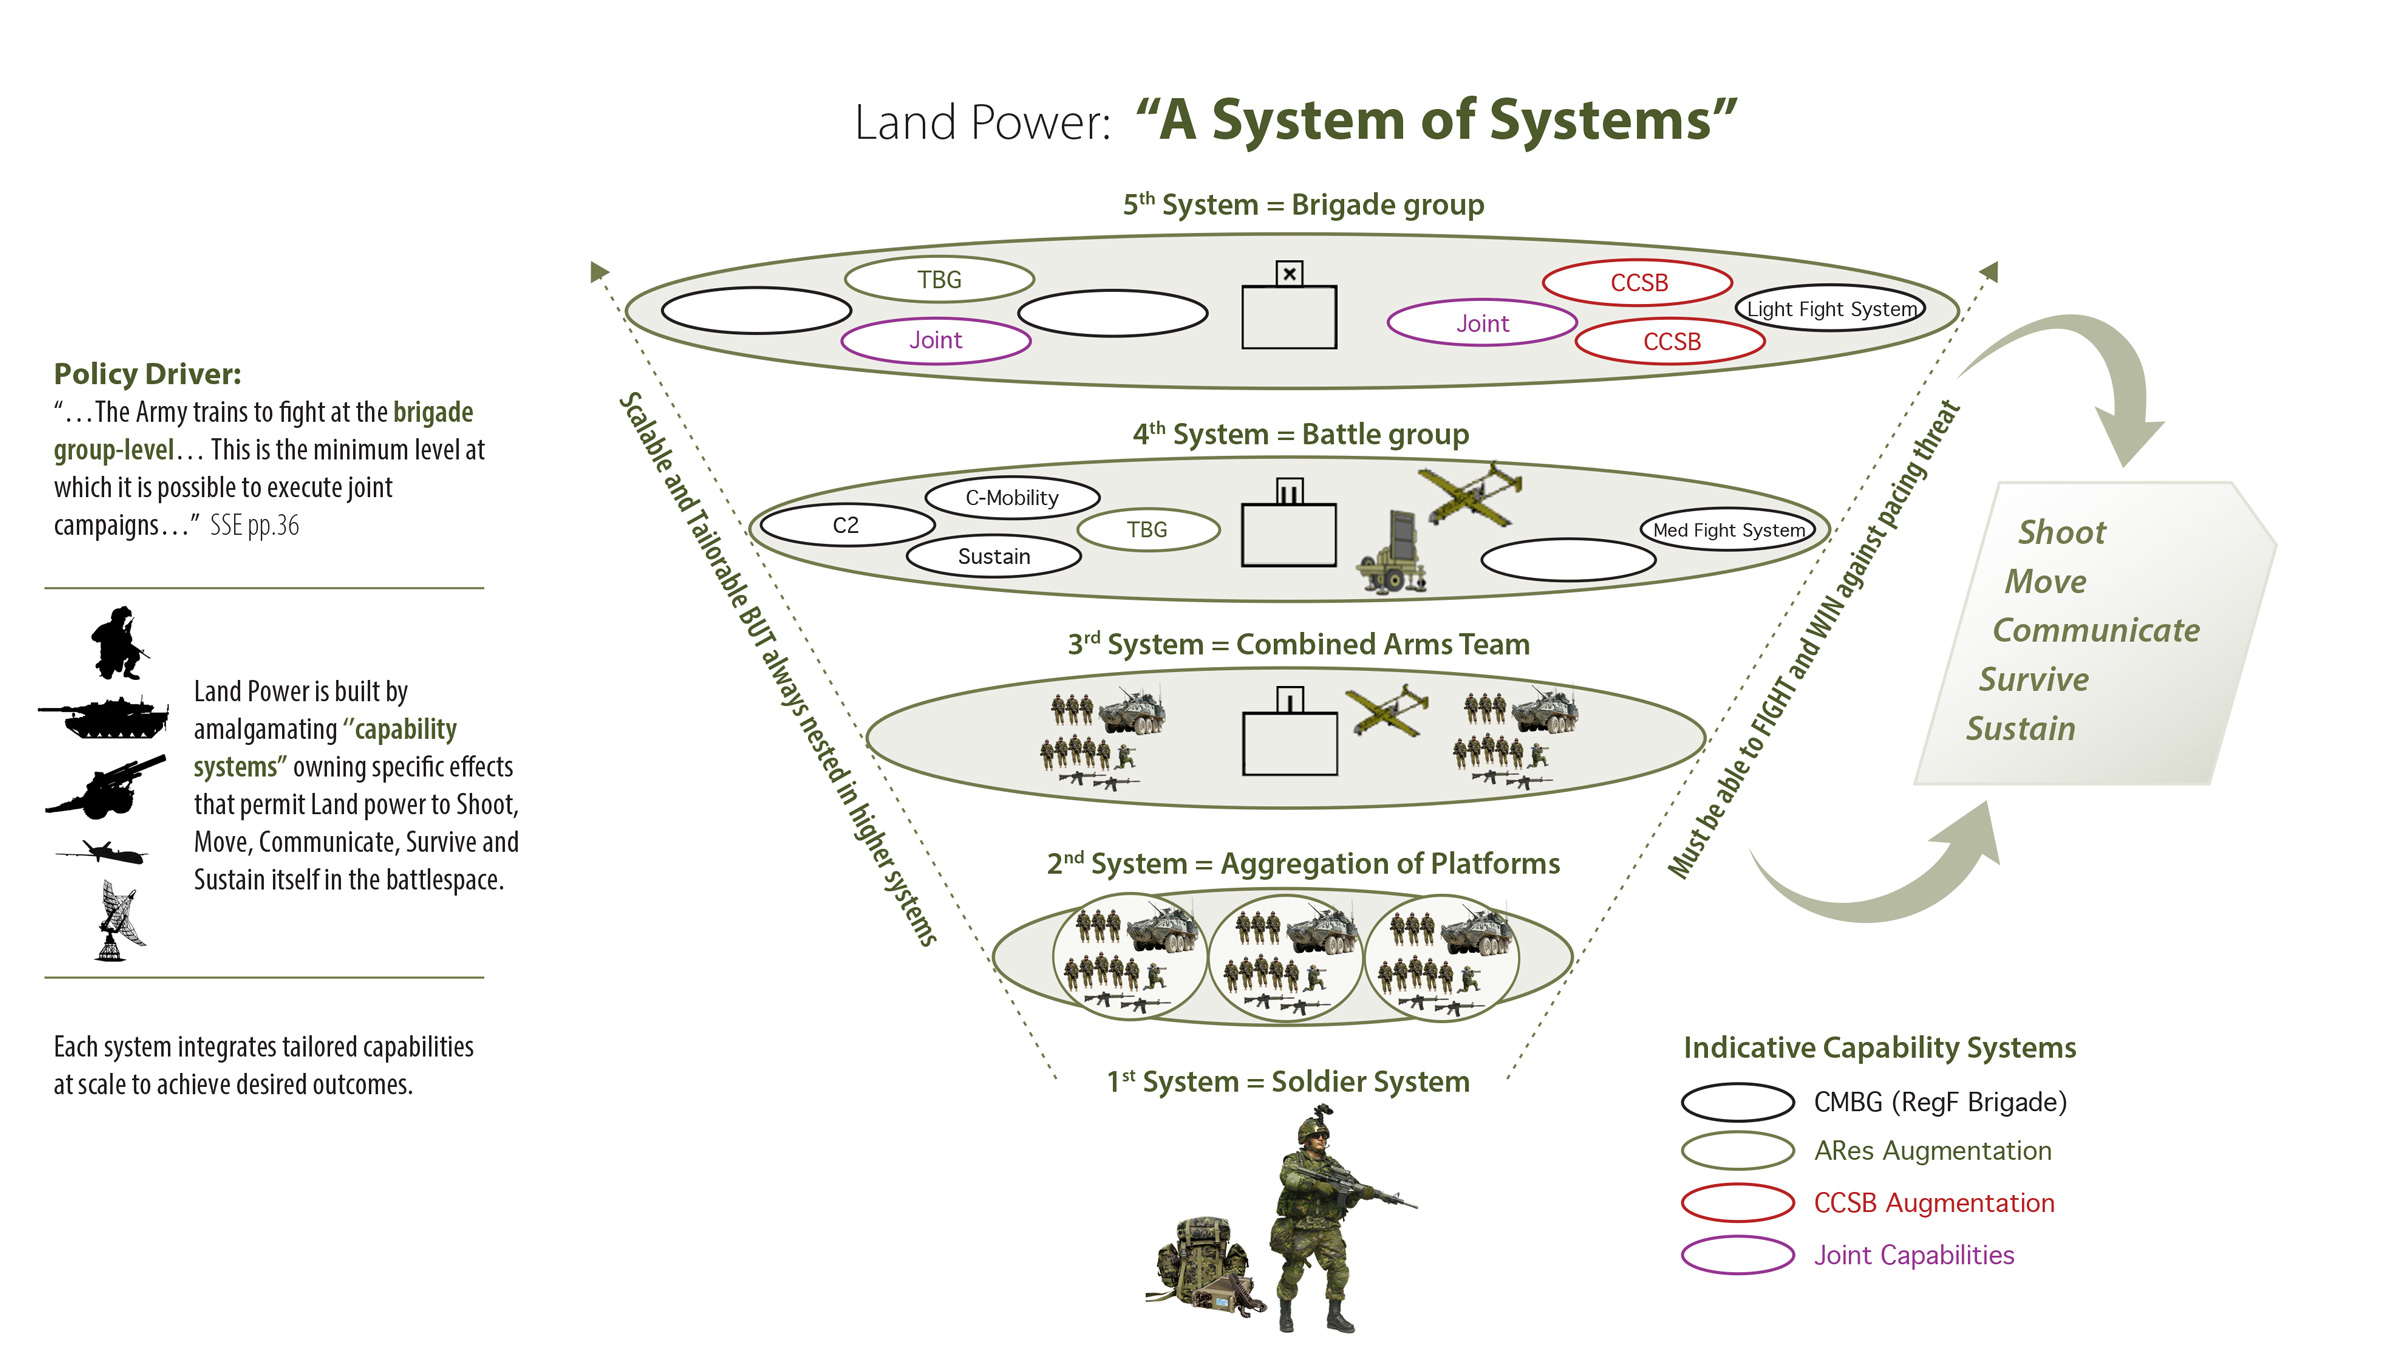 Graphic - Land Power: A system of systems